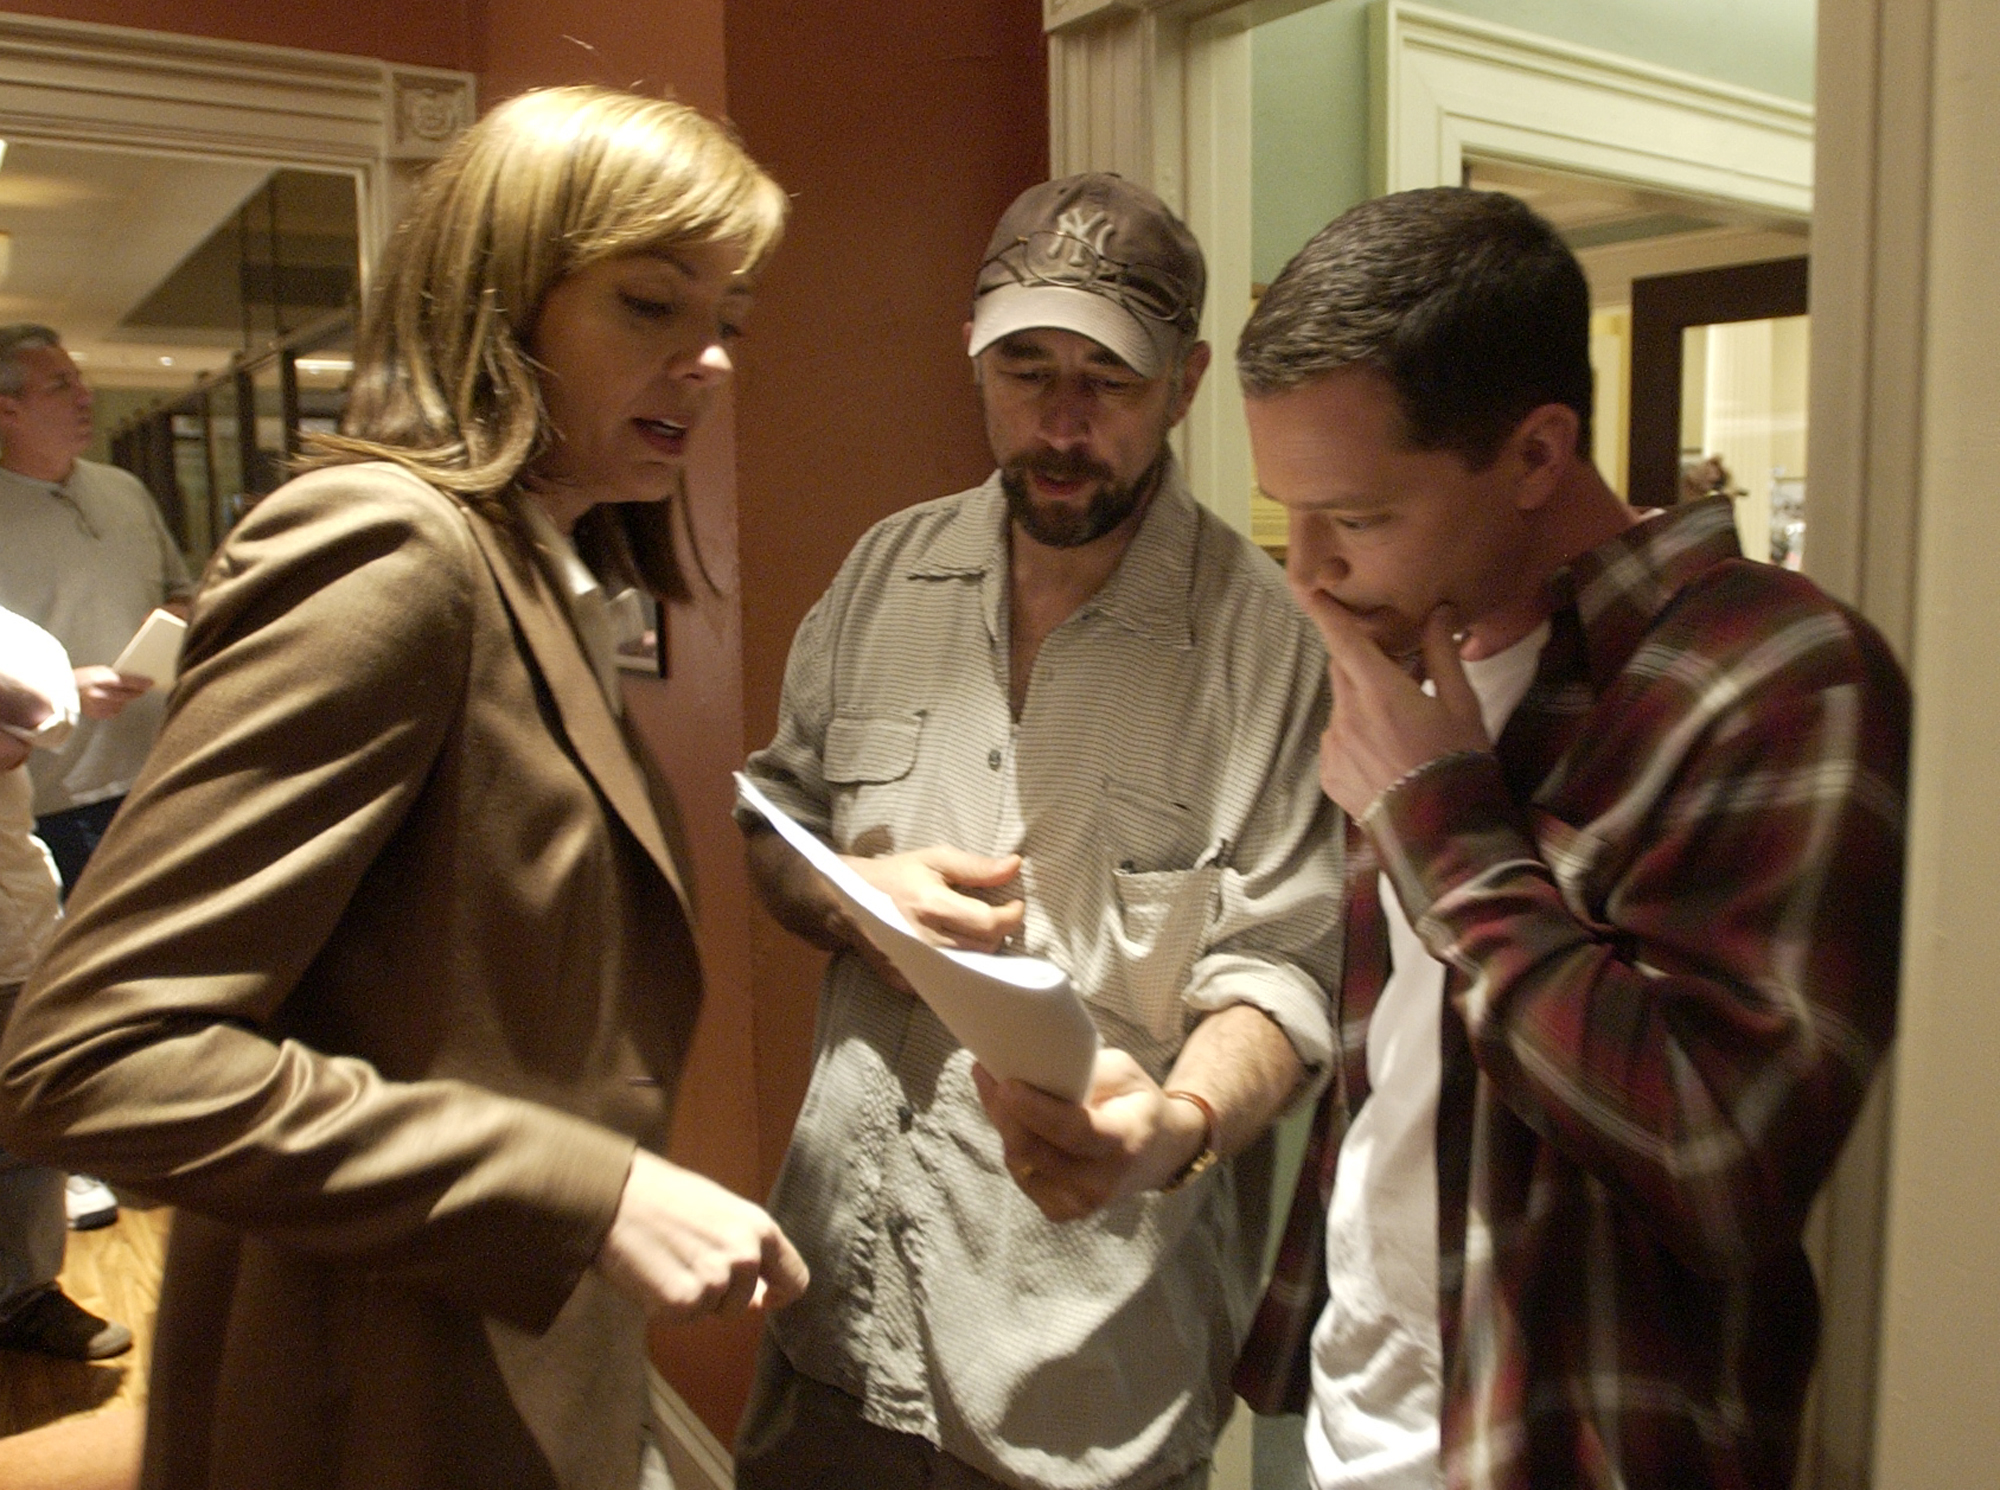 Actors Josh Malina, right, who plays White House aide Will Bailey on NBC's   The West Wing,  goes over a scene with cast members Allison Janney, and Richard Schiff during filming in Burbank, Calif., March 10, 2004.